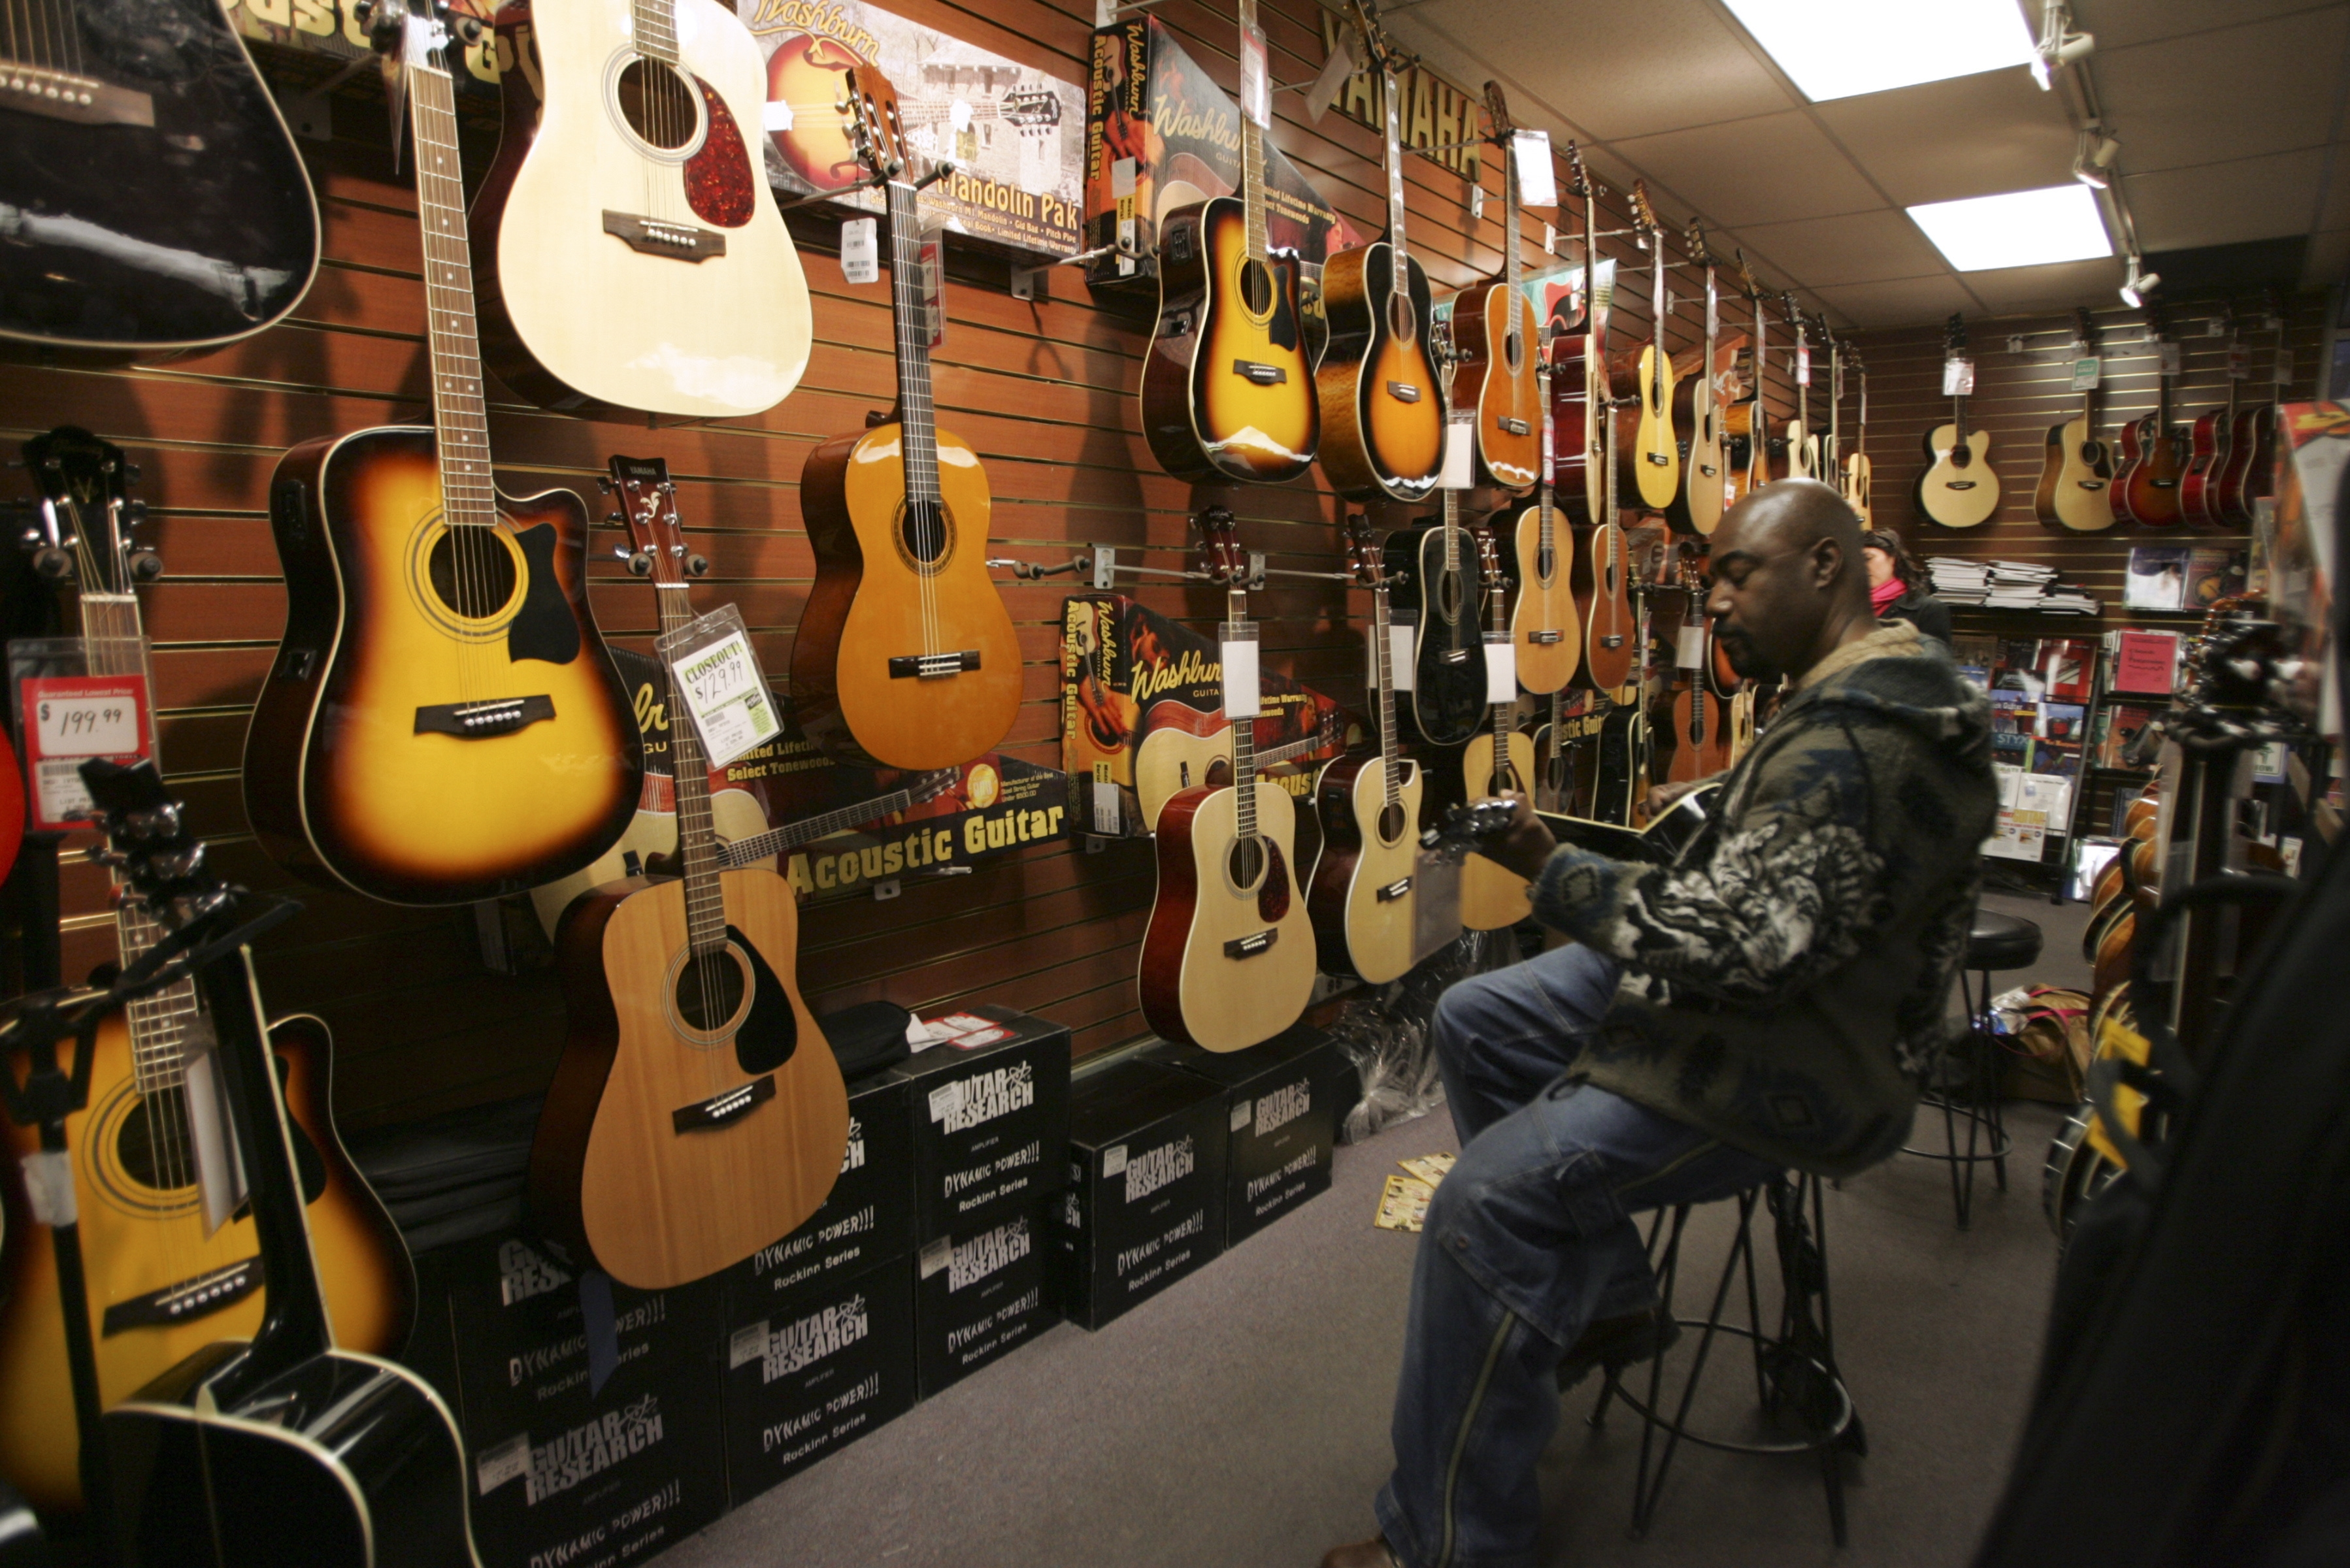 Nate Masuicca plays a guitar at a Sam Ash store in New York. The AARP's Life Reimagined division said that retirees are embracing passions of their youth, such as music, as they get older and have turned to those activities to fulfill their lives.